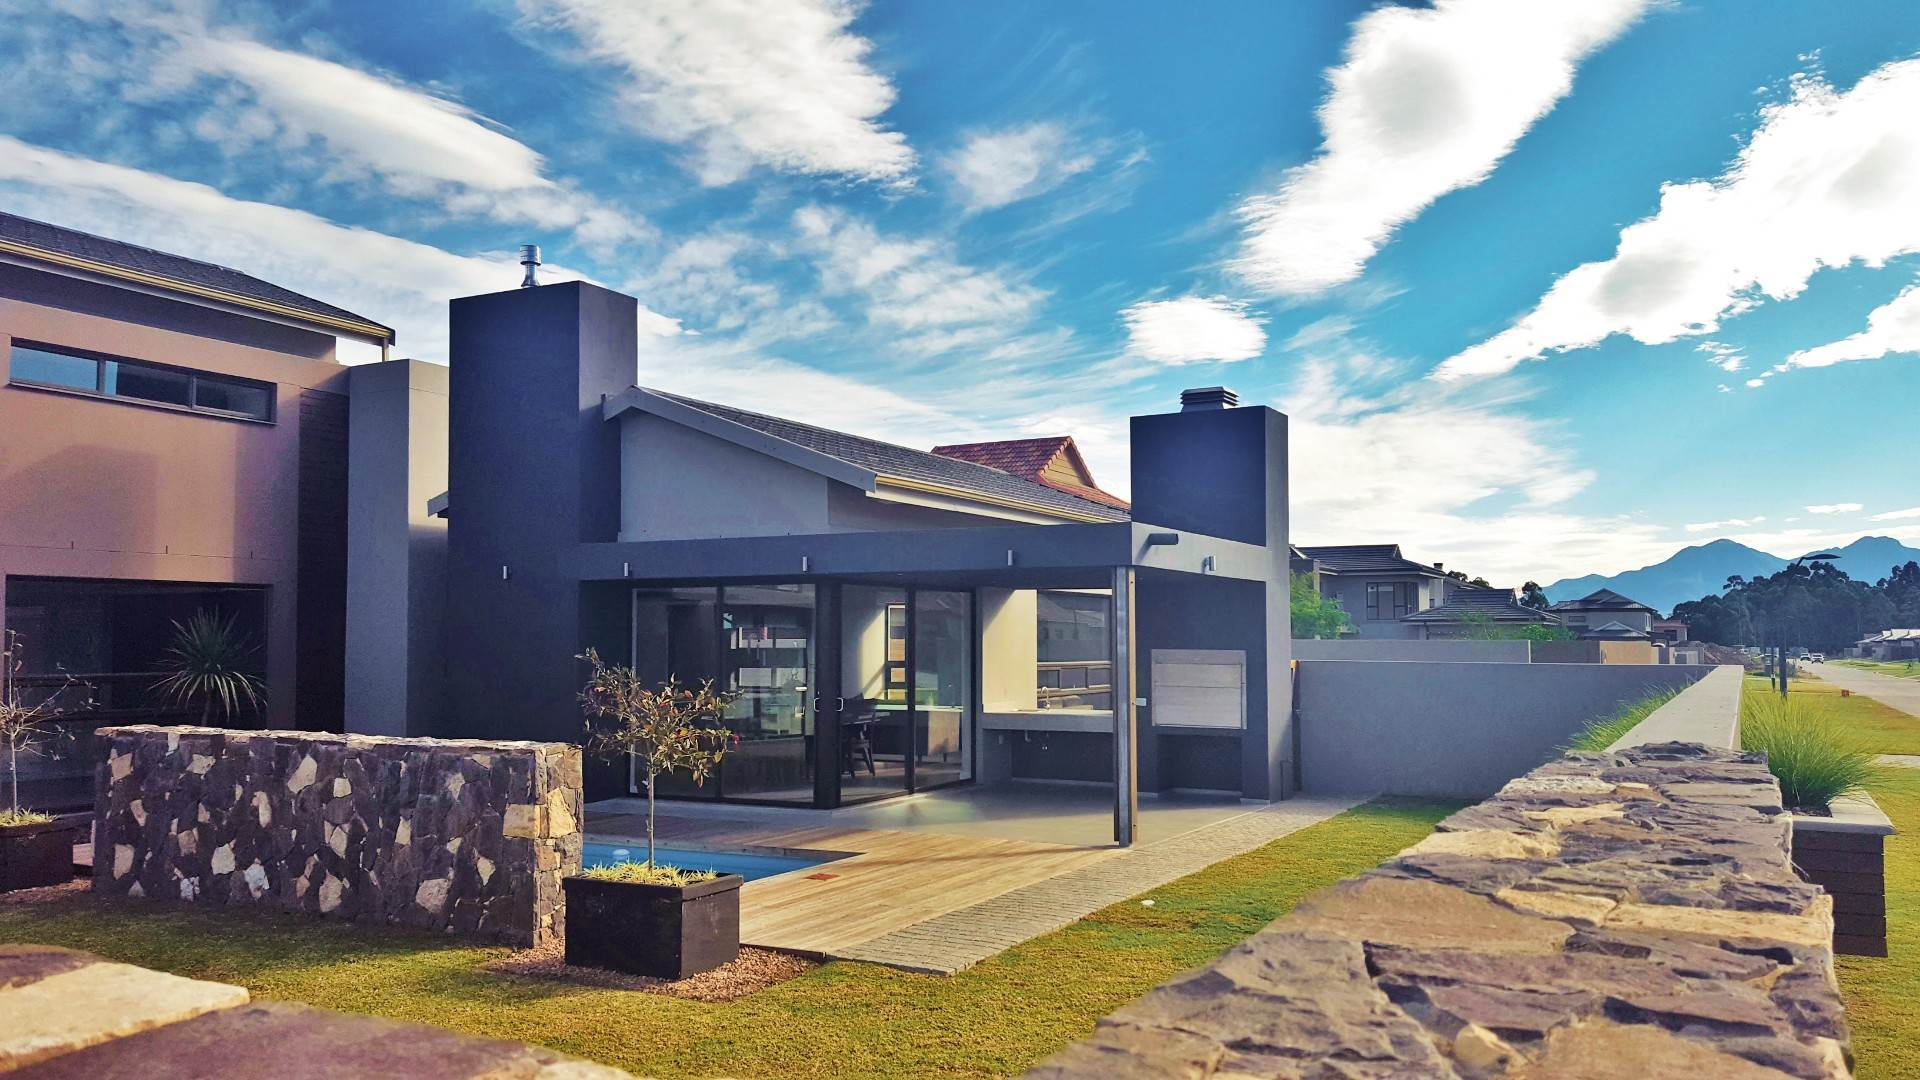 3 BedroomHouse For Sale In Heather Park